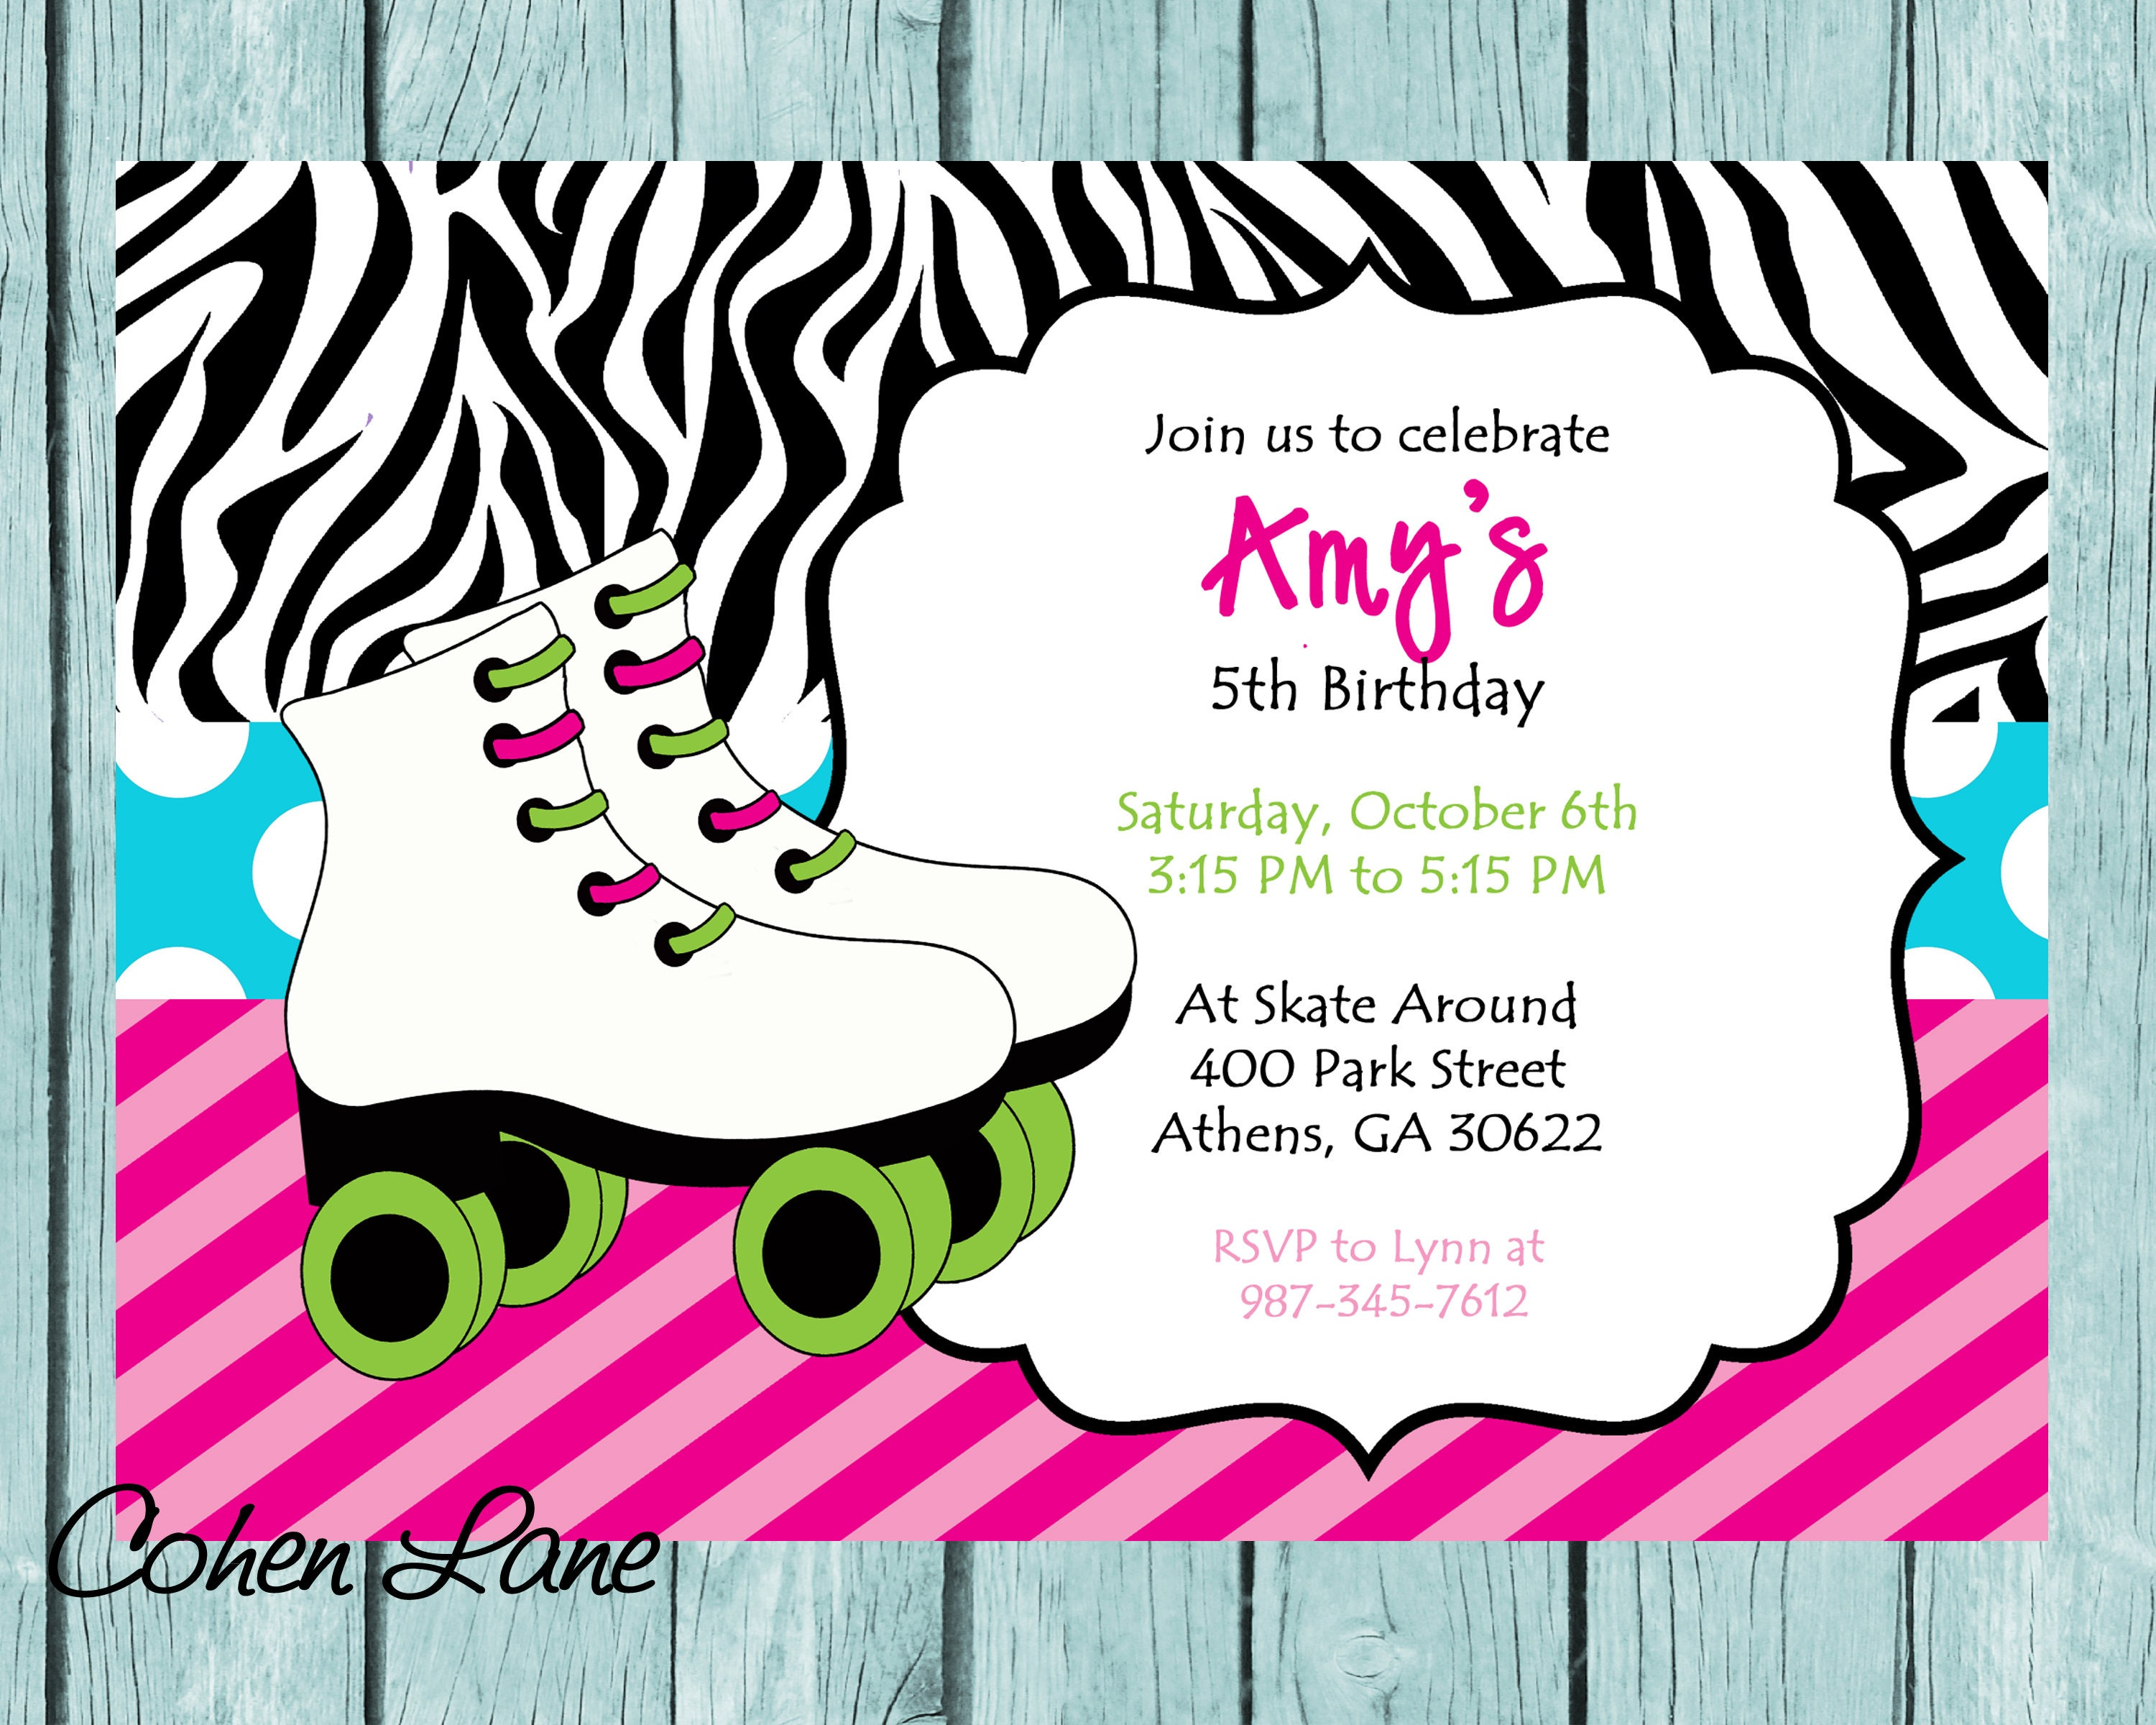 DIY Printable Skating Party Invitation. Zebra Print Skate